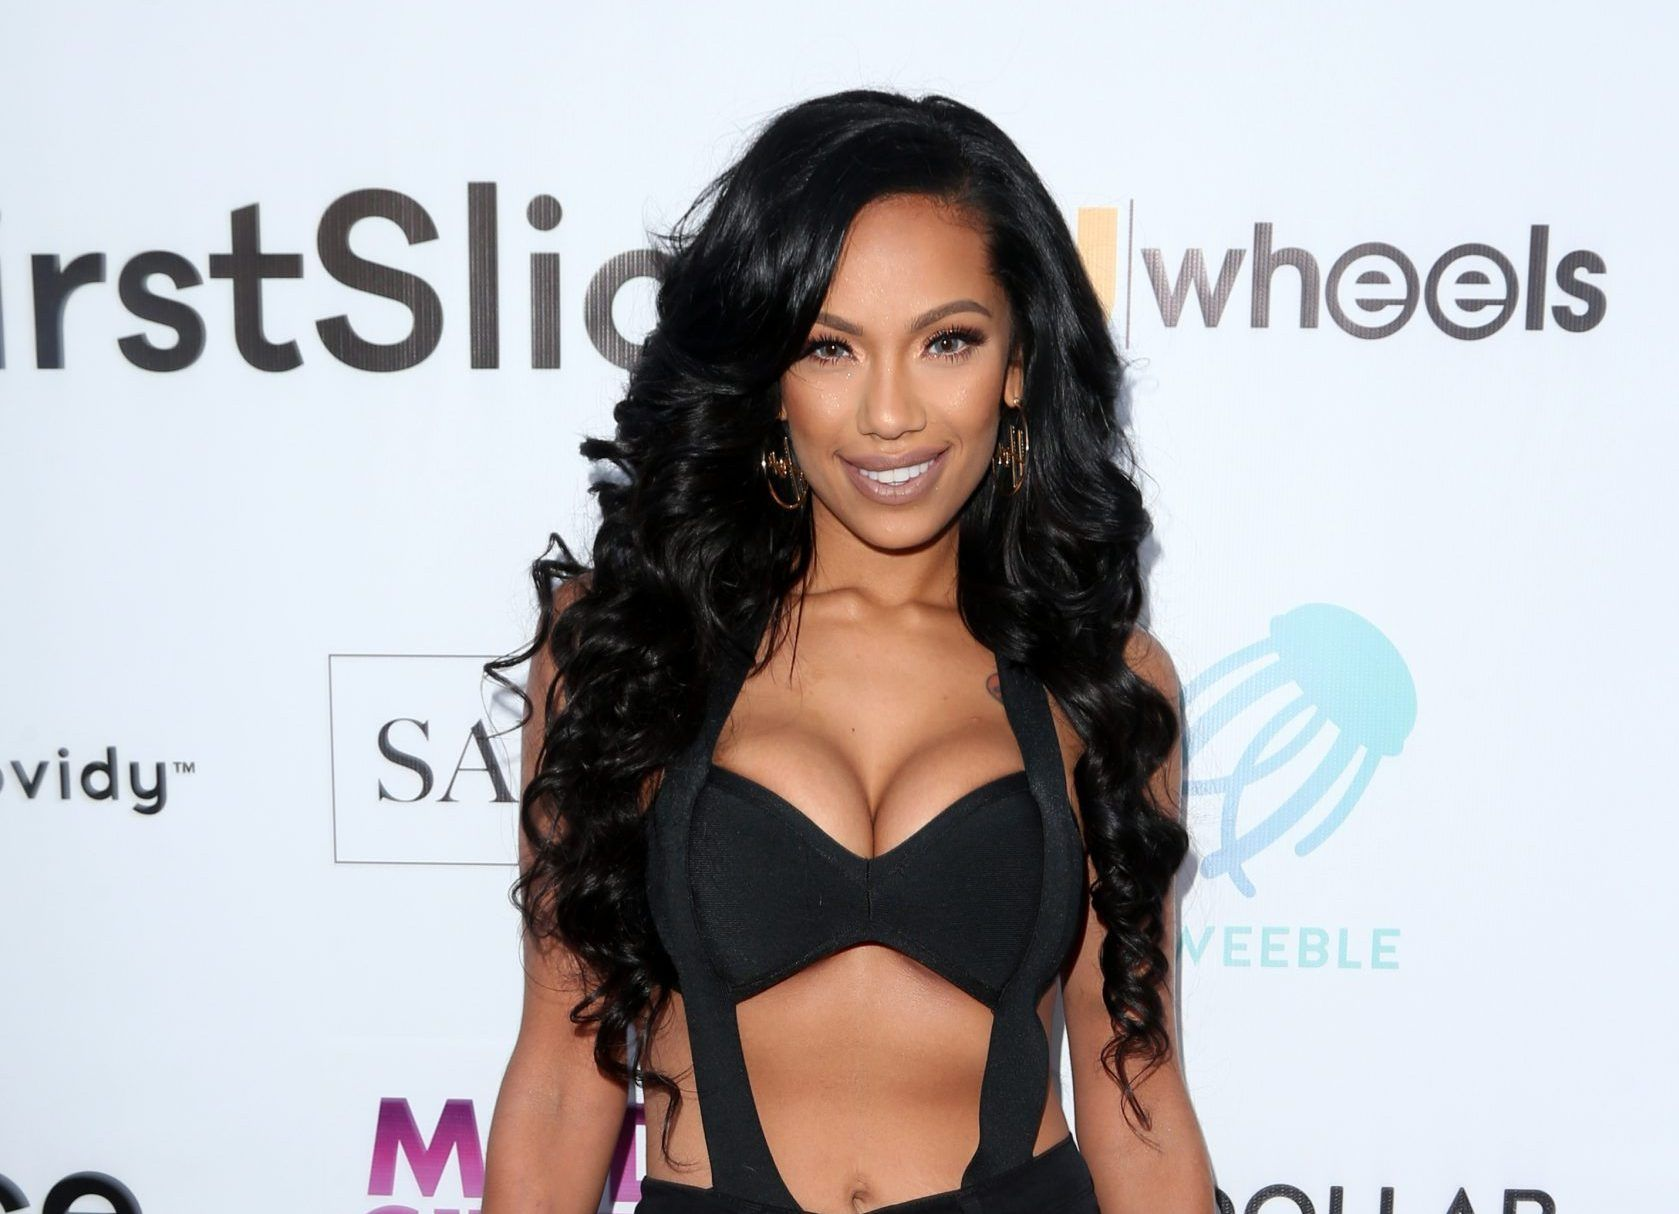 erica-mena-blows-fans-minds-with-a-massive-cleavage-see-her-daring-outfit